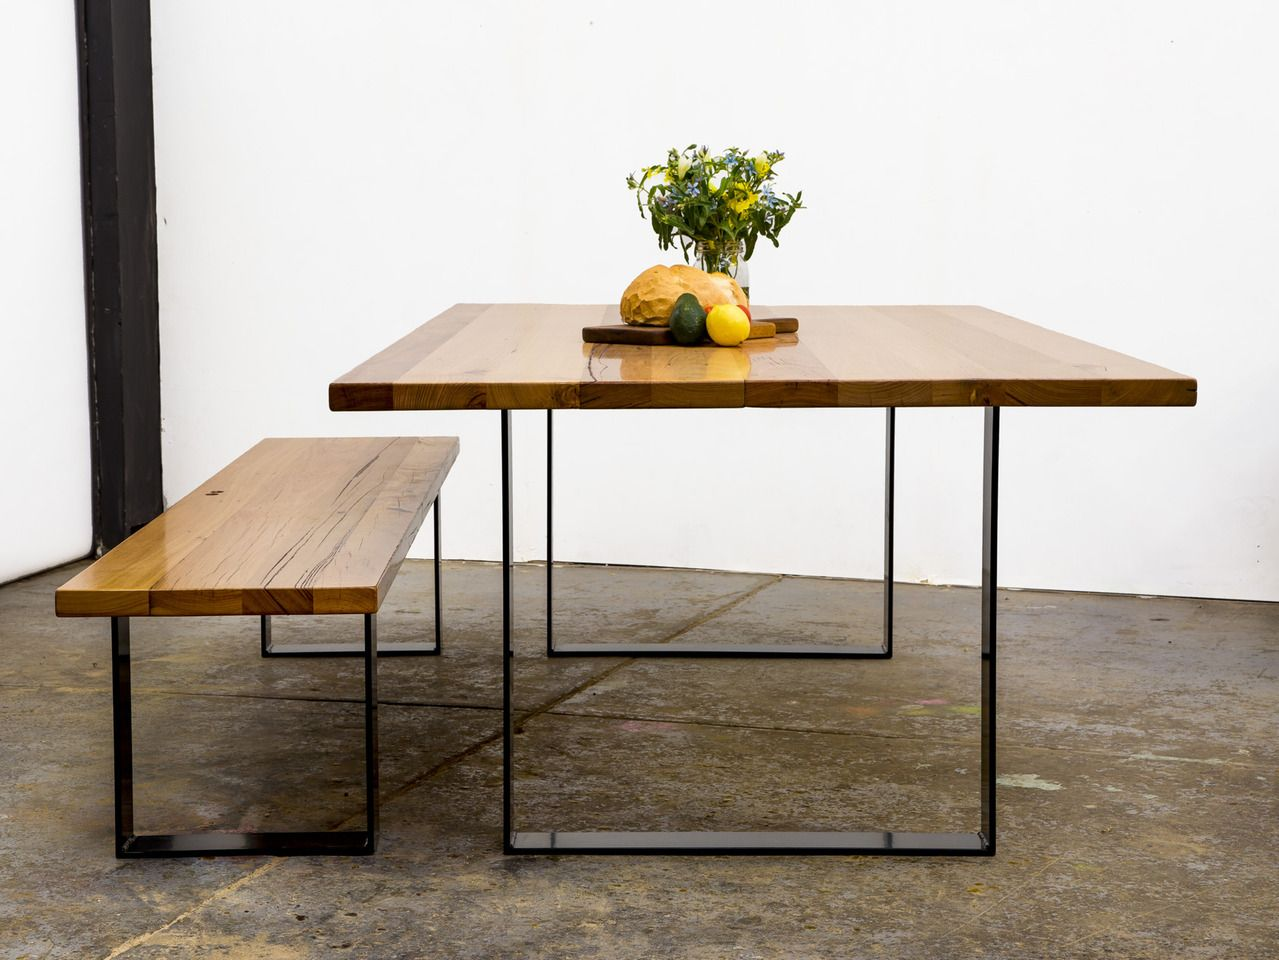 Steel Square Table With Images Dining Table With Bench